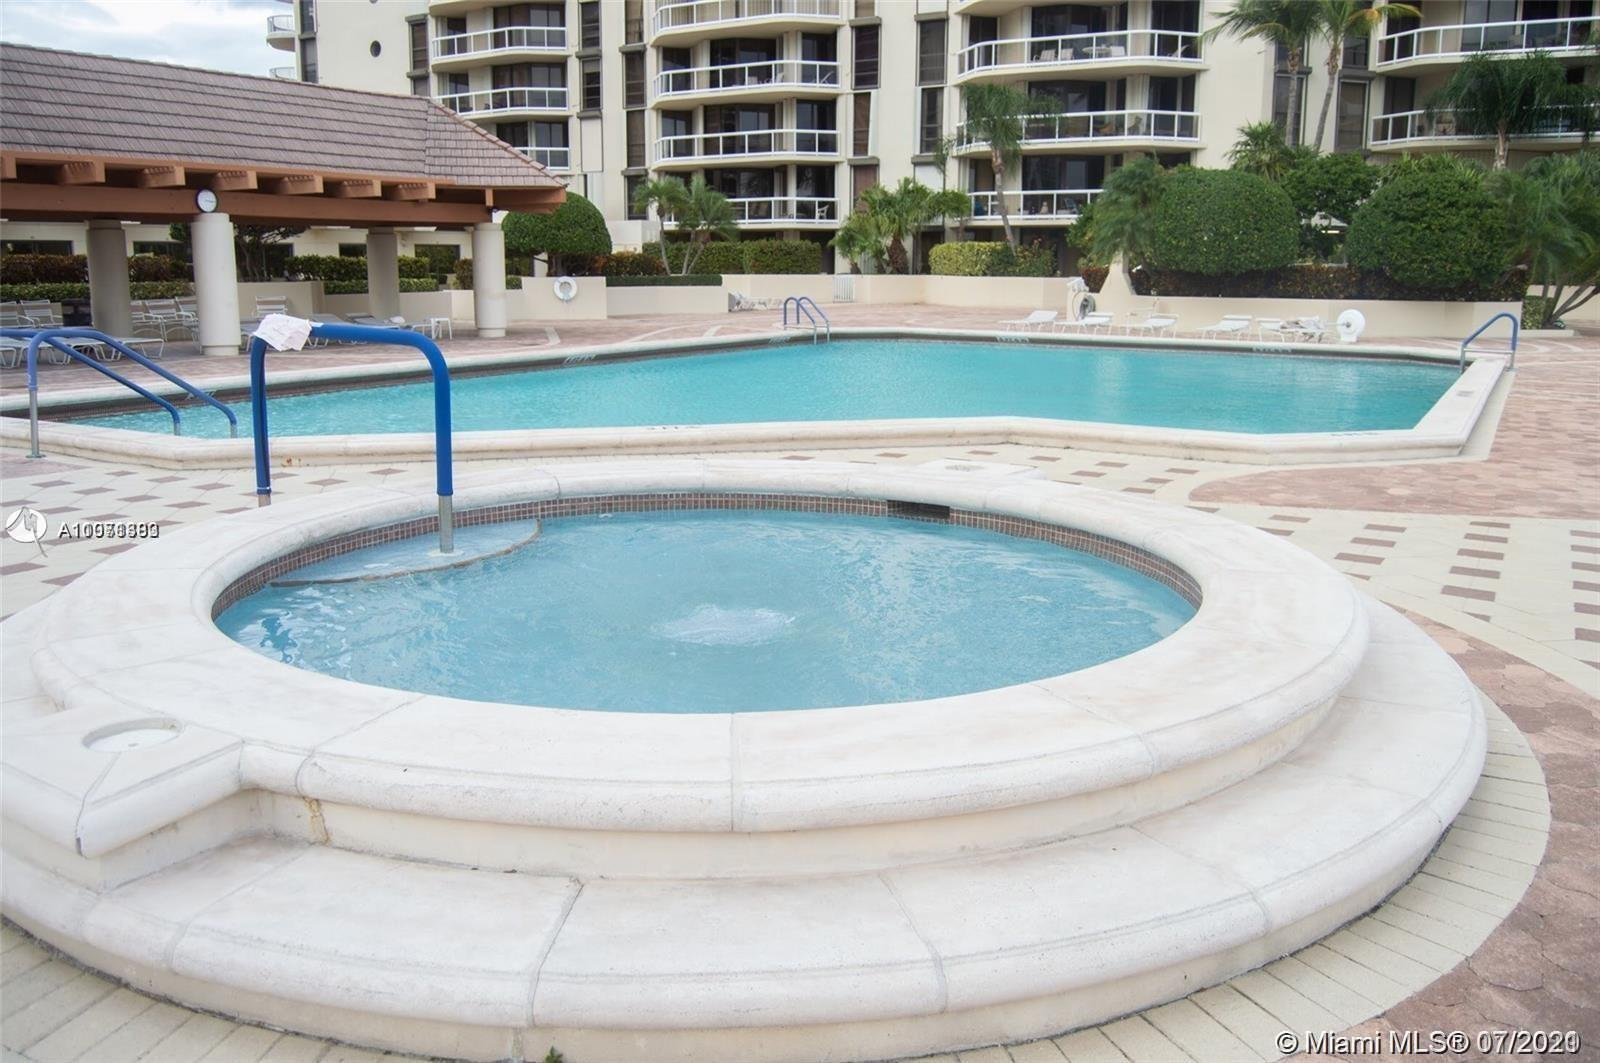 BEAUTIFUL REMODELED UNIT. NEW TILE FLOORS, GRANITE COUNTER TOPS AND STAINLESS STEEL APPLIANCES.